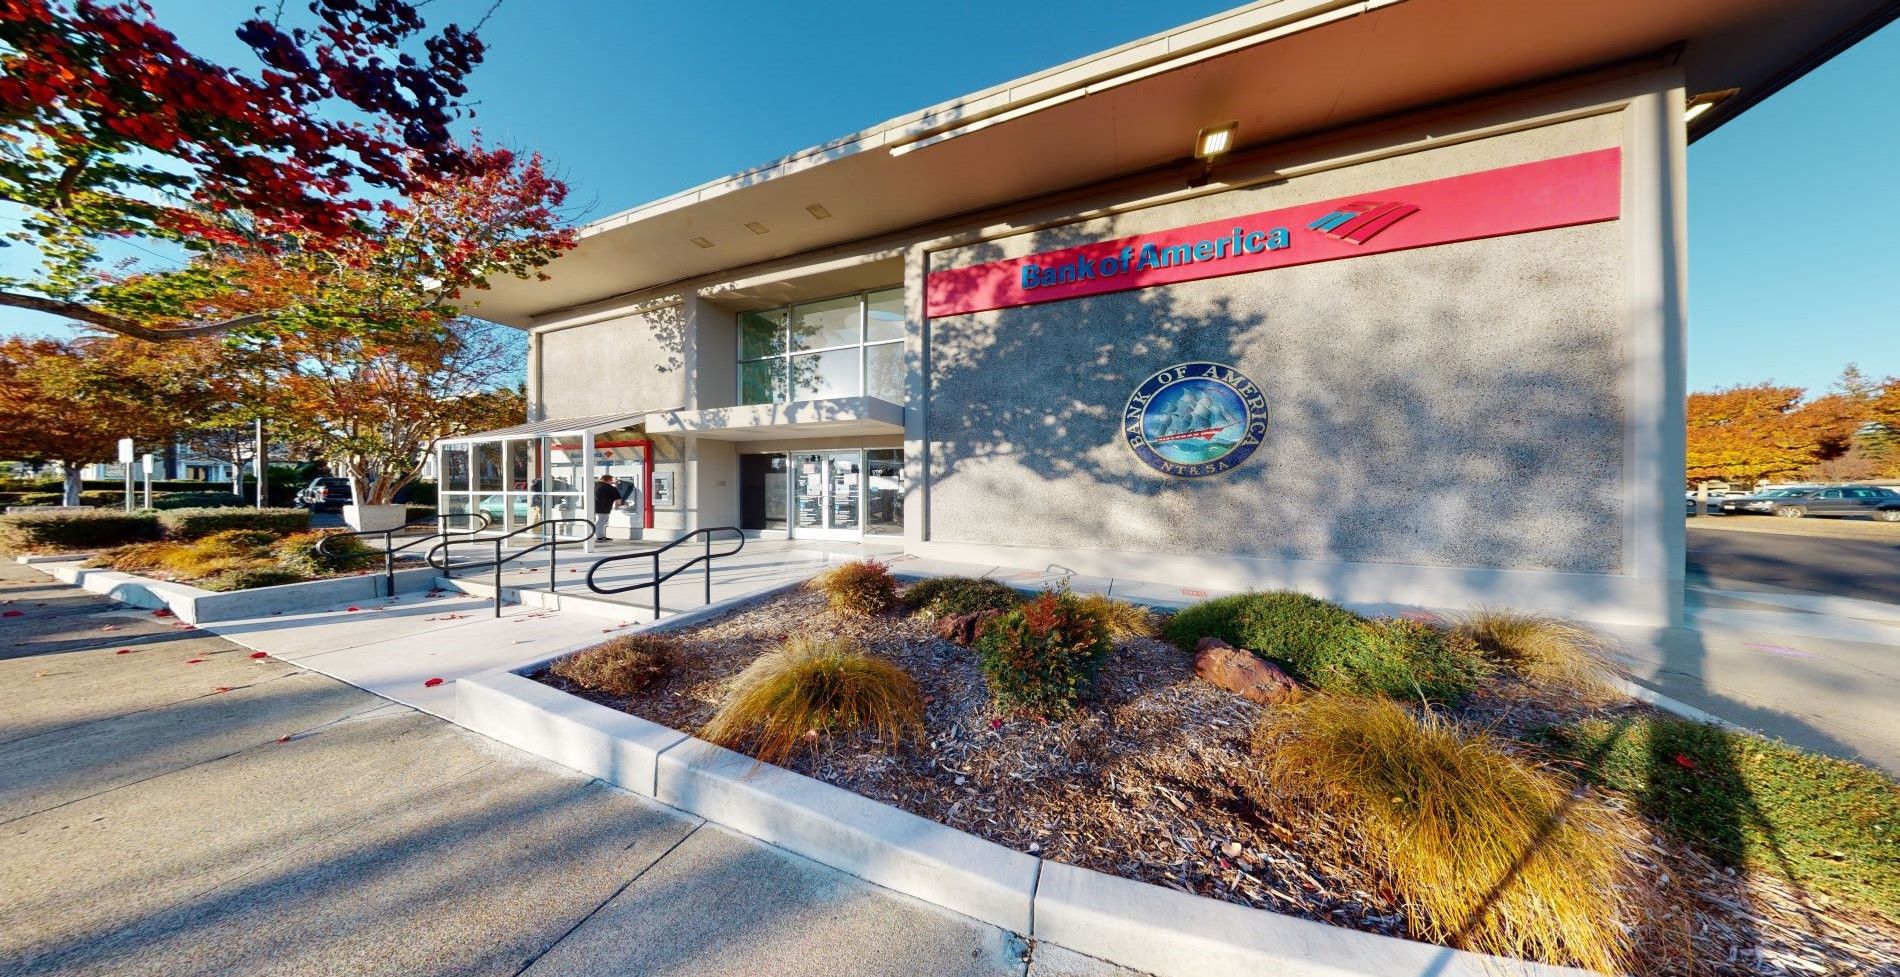 Bank of America financial center with walk-up ATM | 1700 1st St, Napa, CA 94559